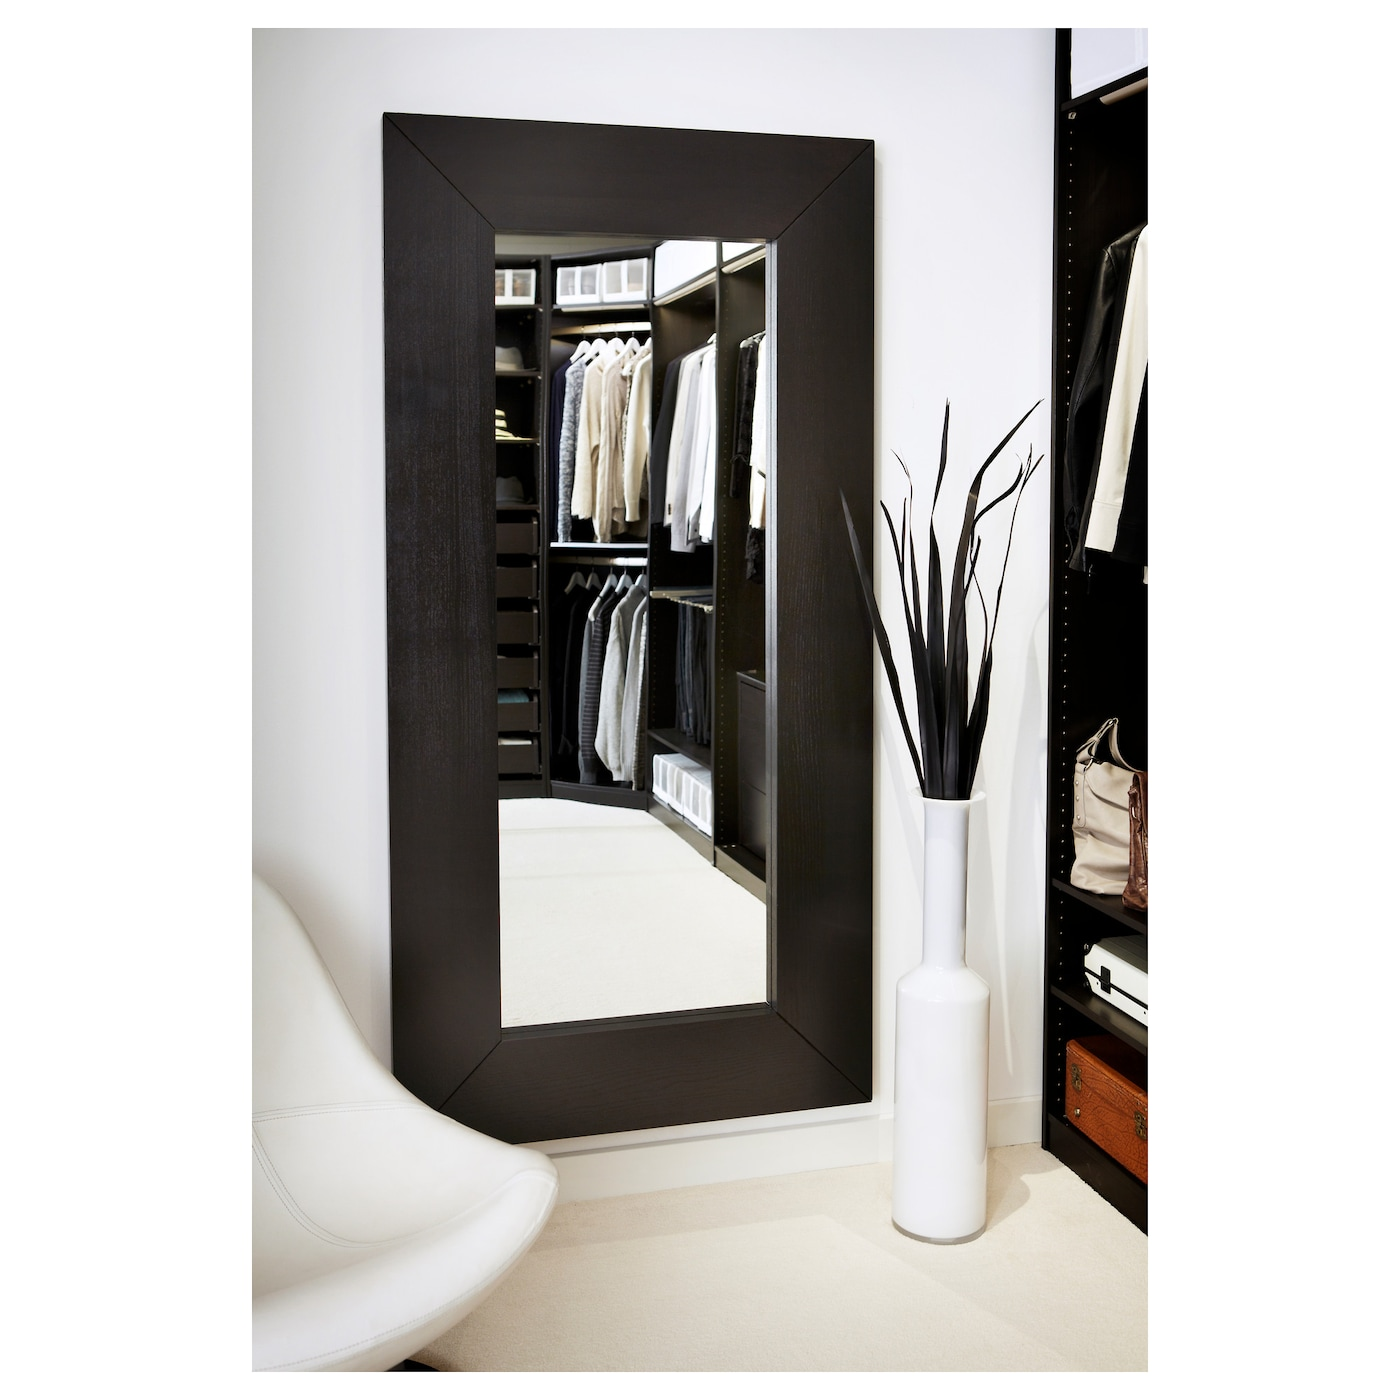 mongstad mirror black brown 94 x 190 cm ikea. Black Bedroom Furniture Sets. Home Design Ideas